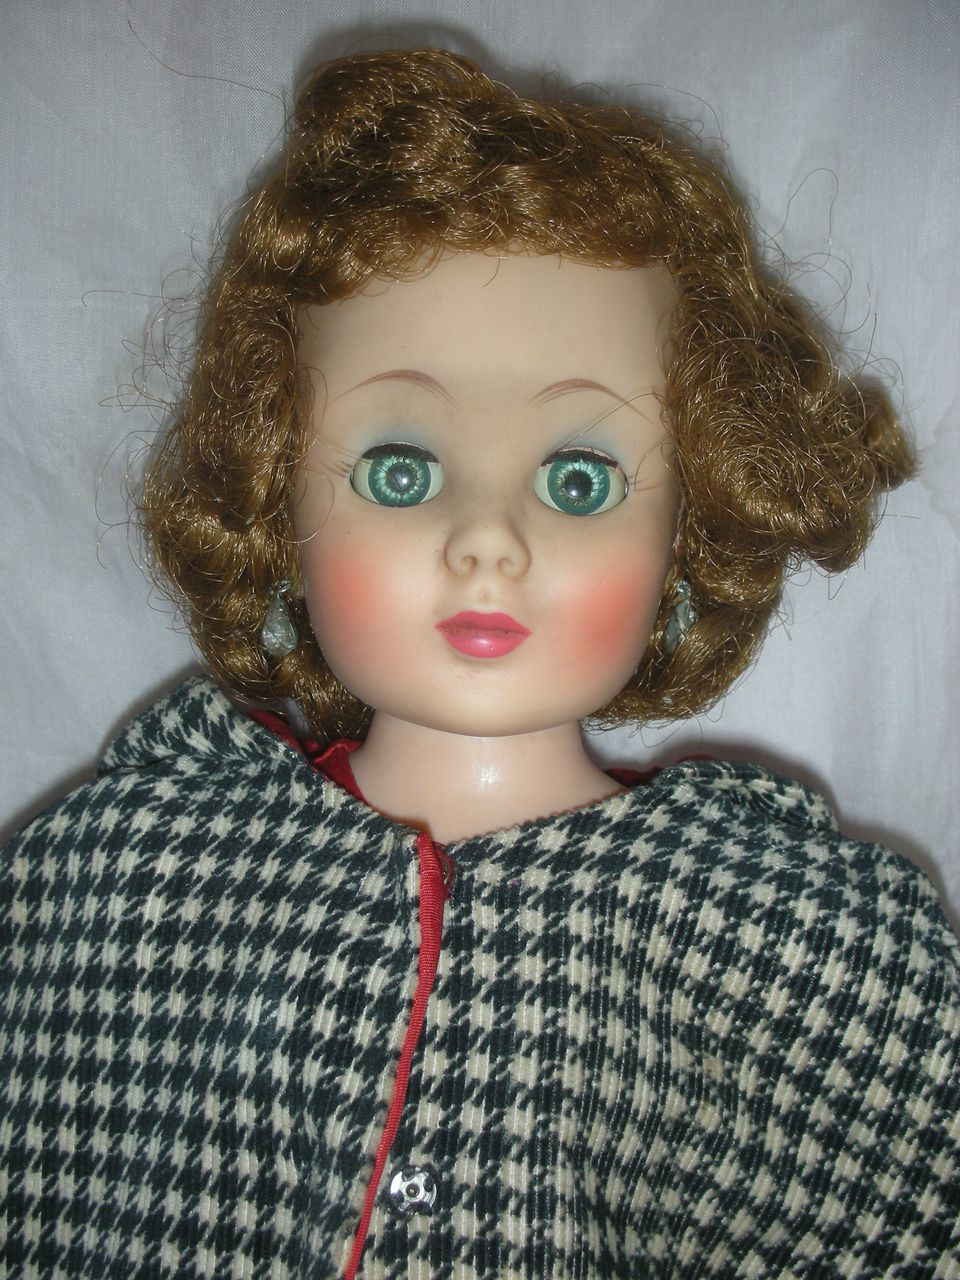 Vintage American Character Vinyl Fashion Doll 20 Inch